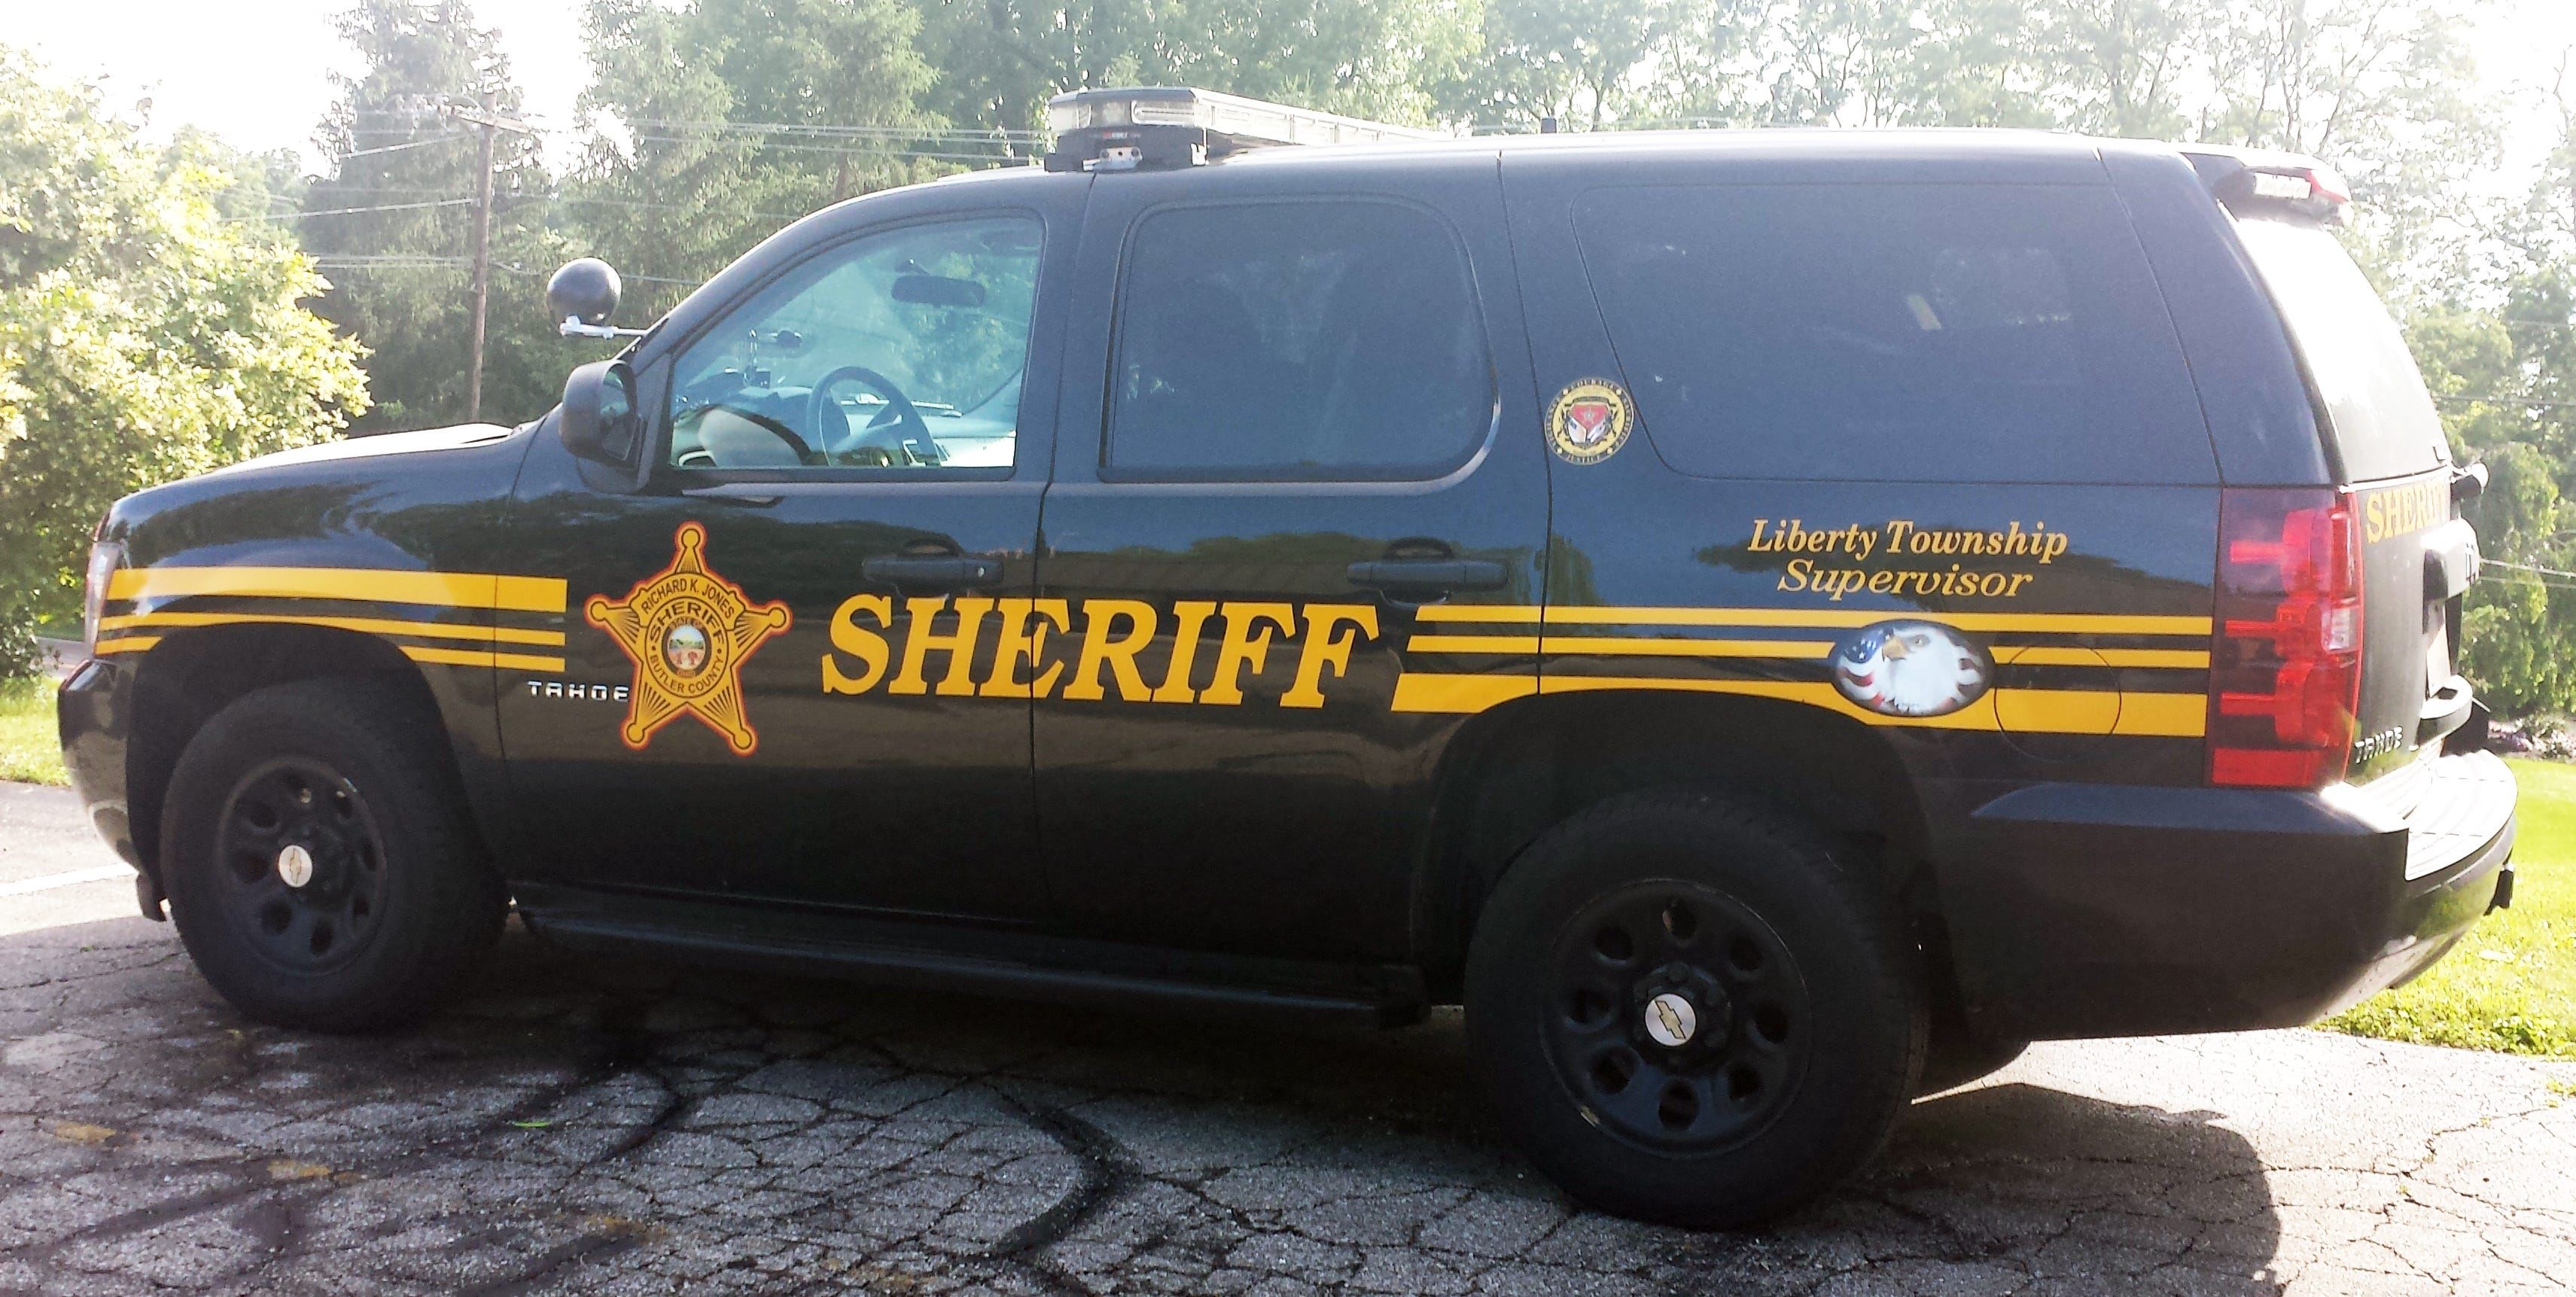 Liberty Township residents could decide on police services